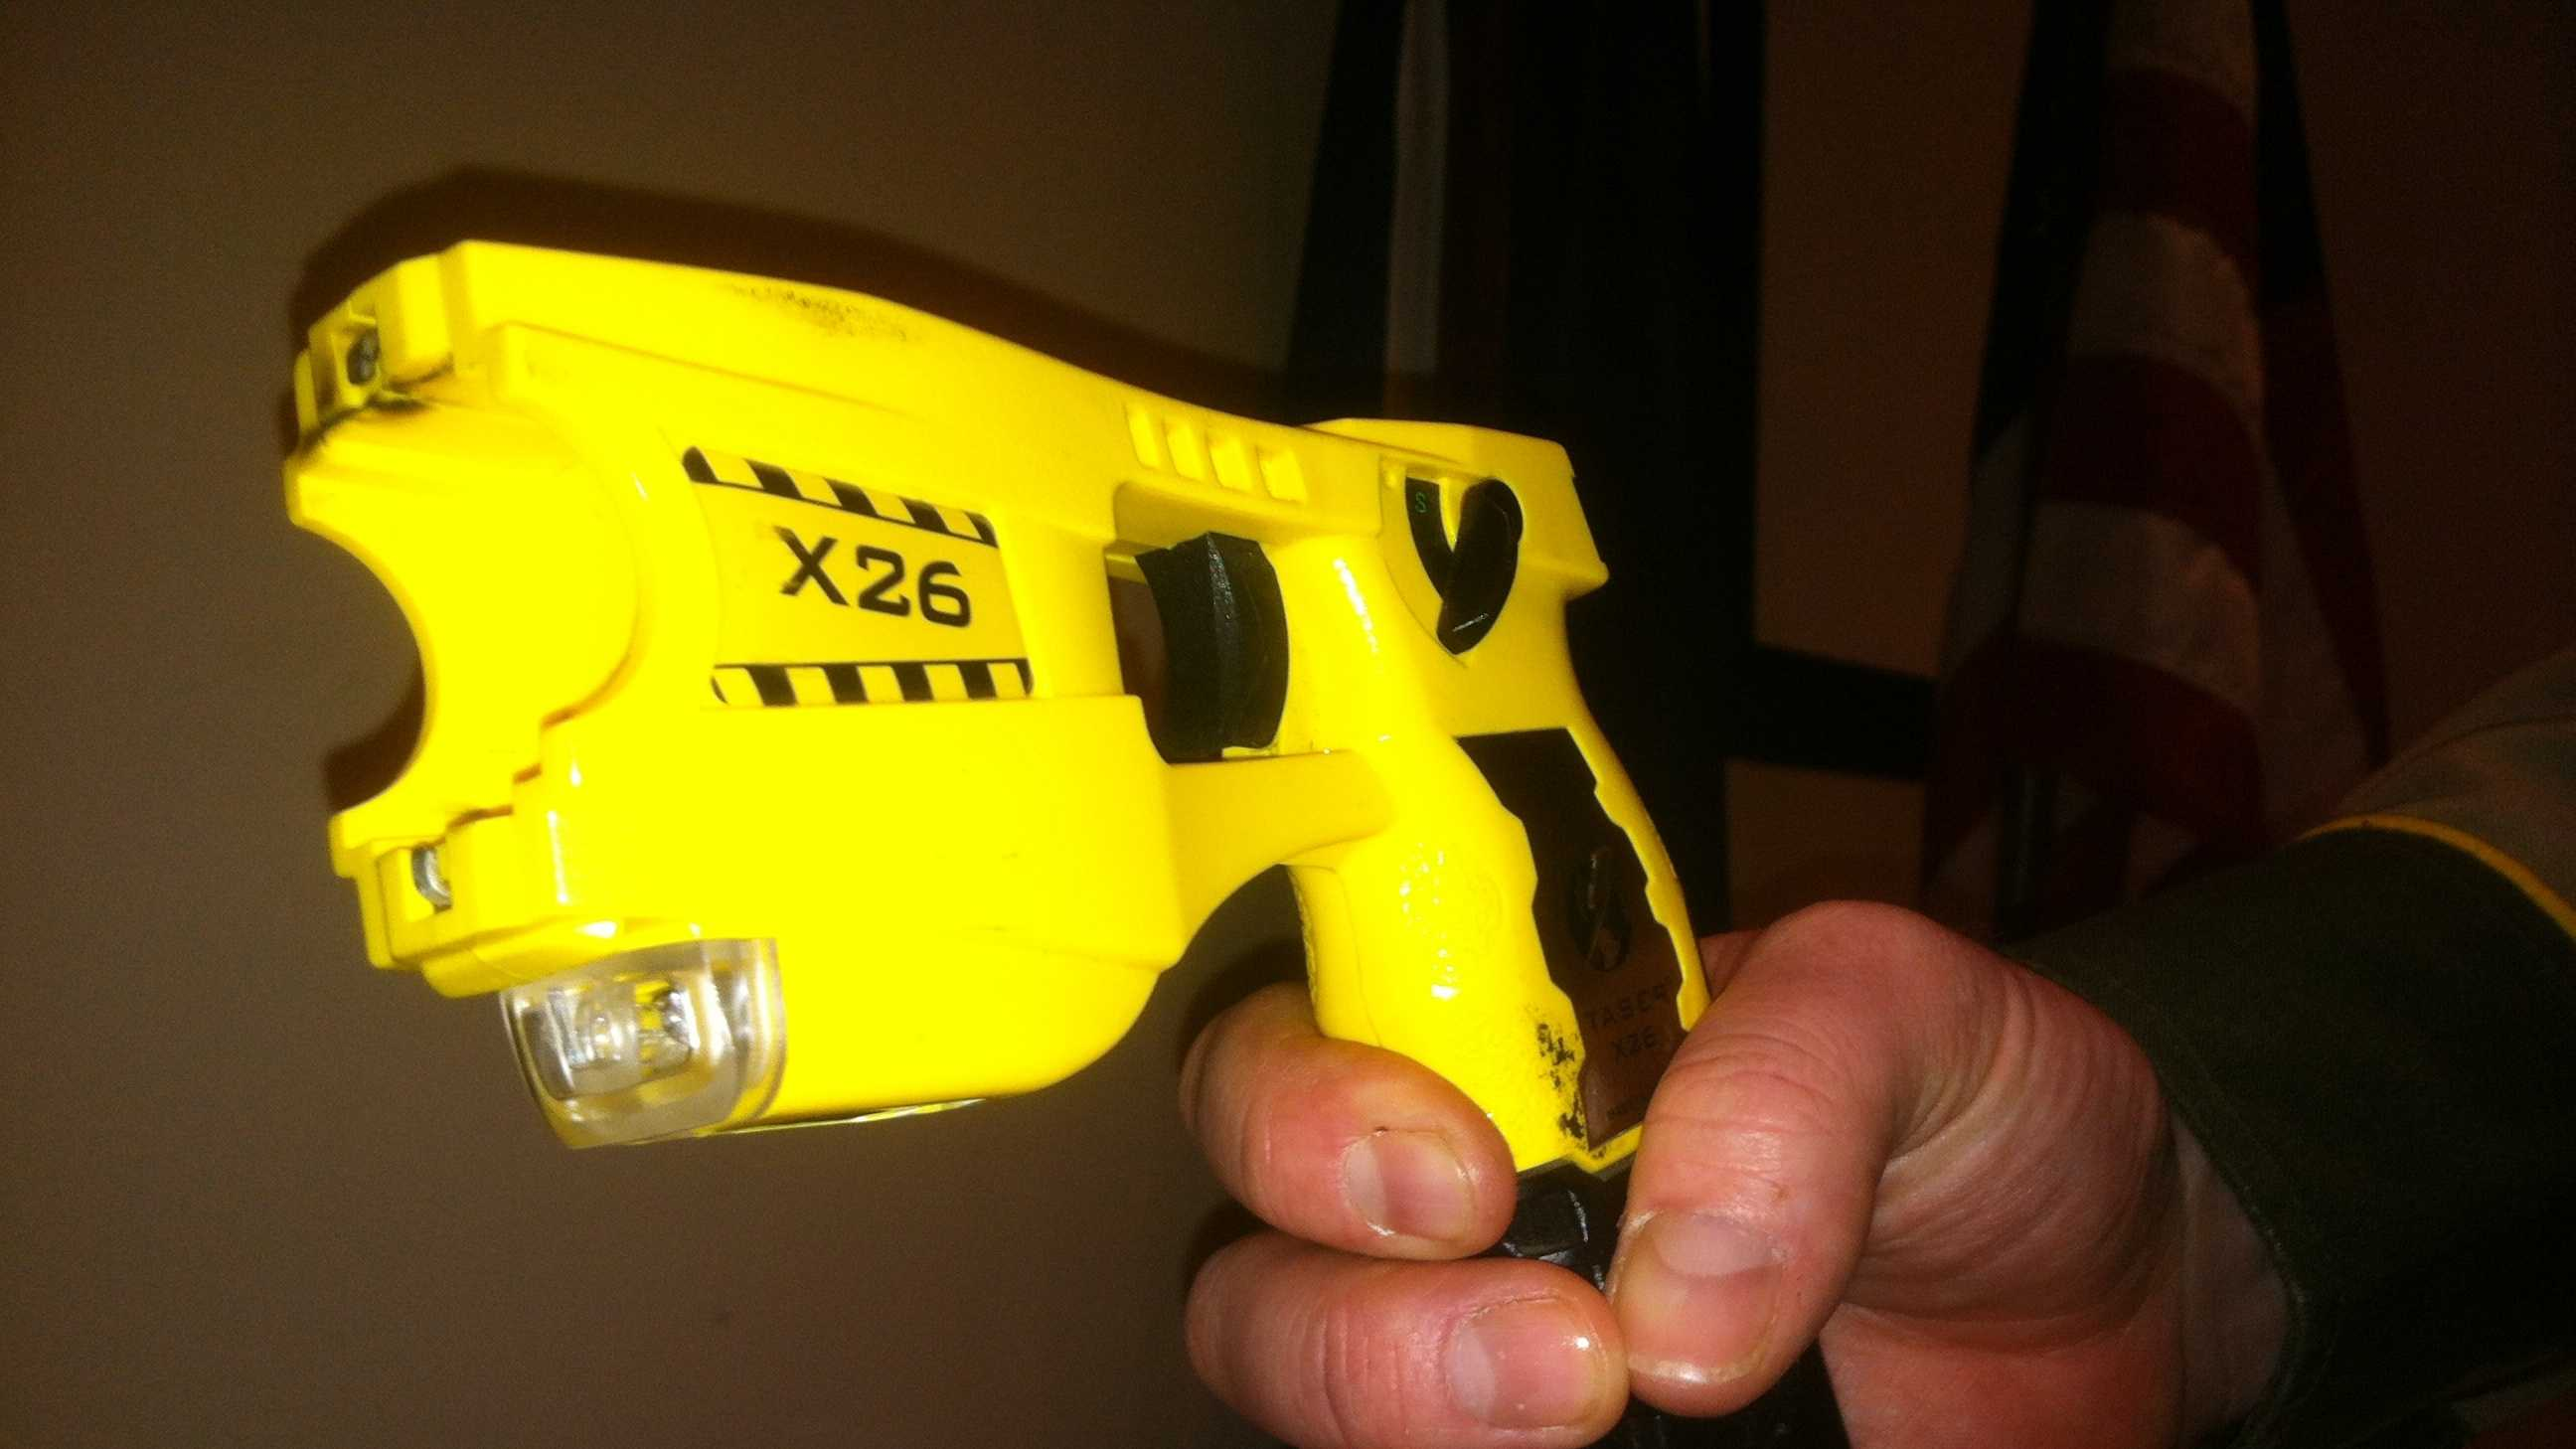 Taser gun held by trooper